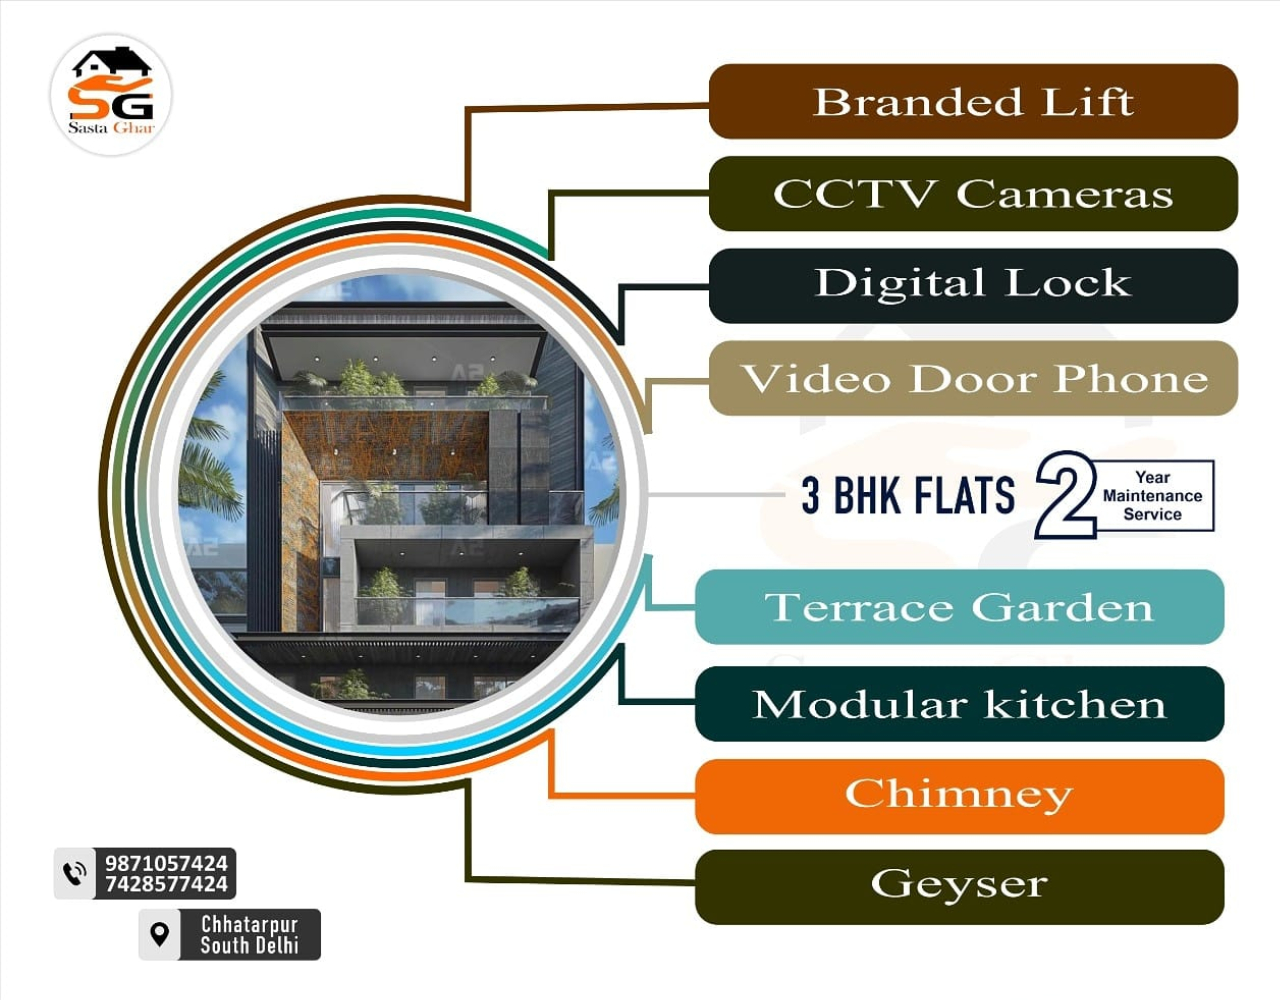 2 & 3 BHK flats In South Delhi Image